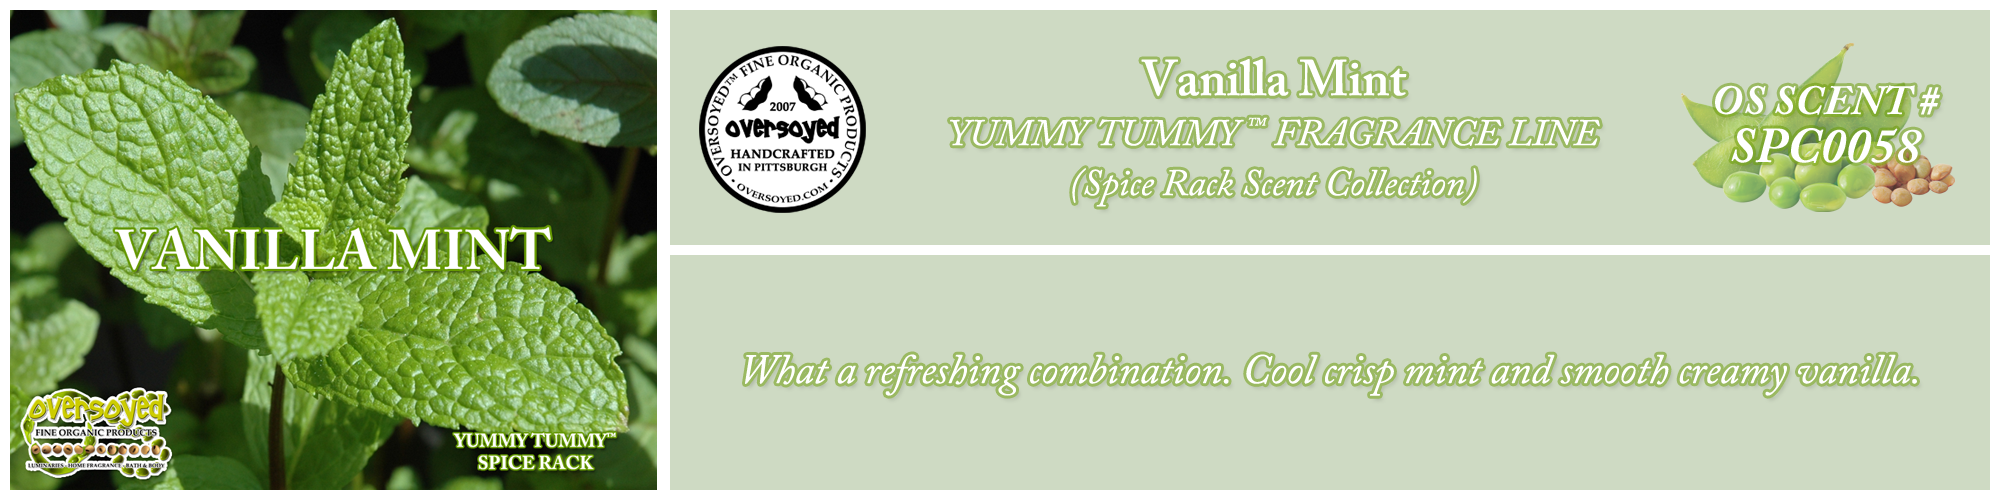 Vanilla Mint Handcrafted Products Collection